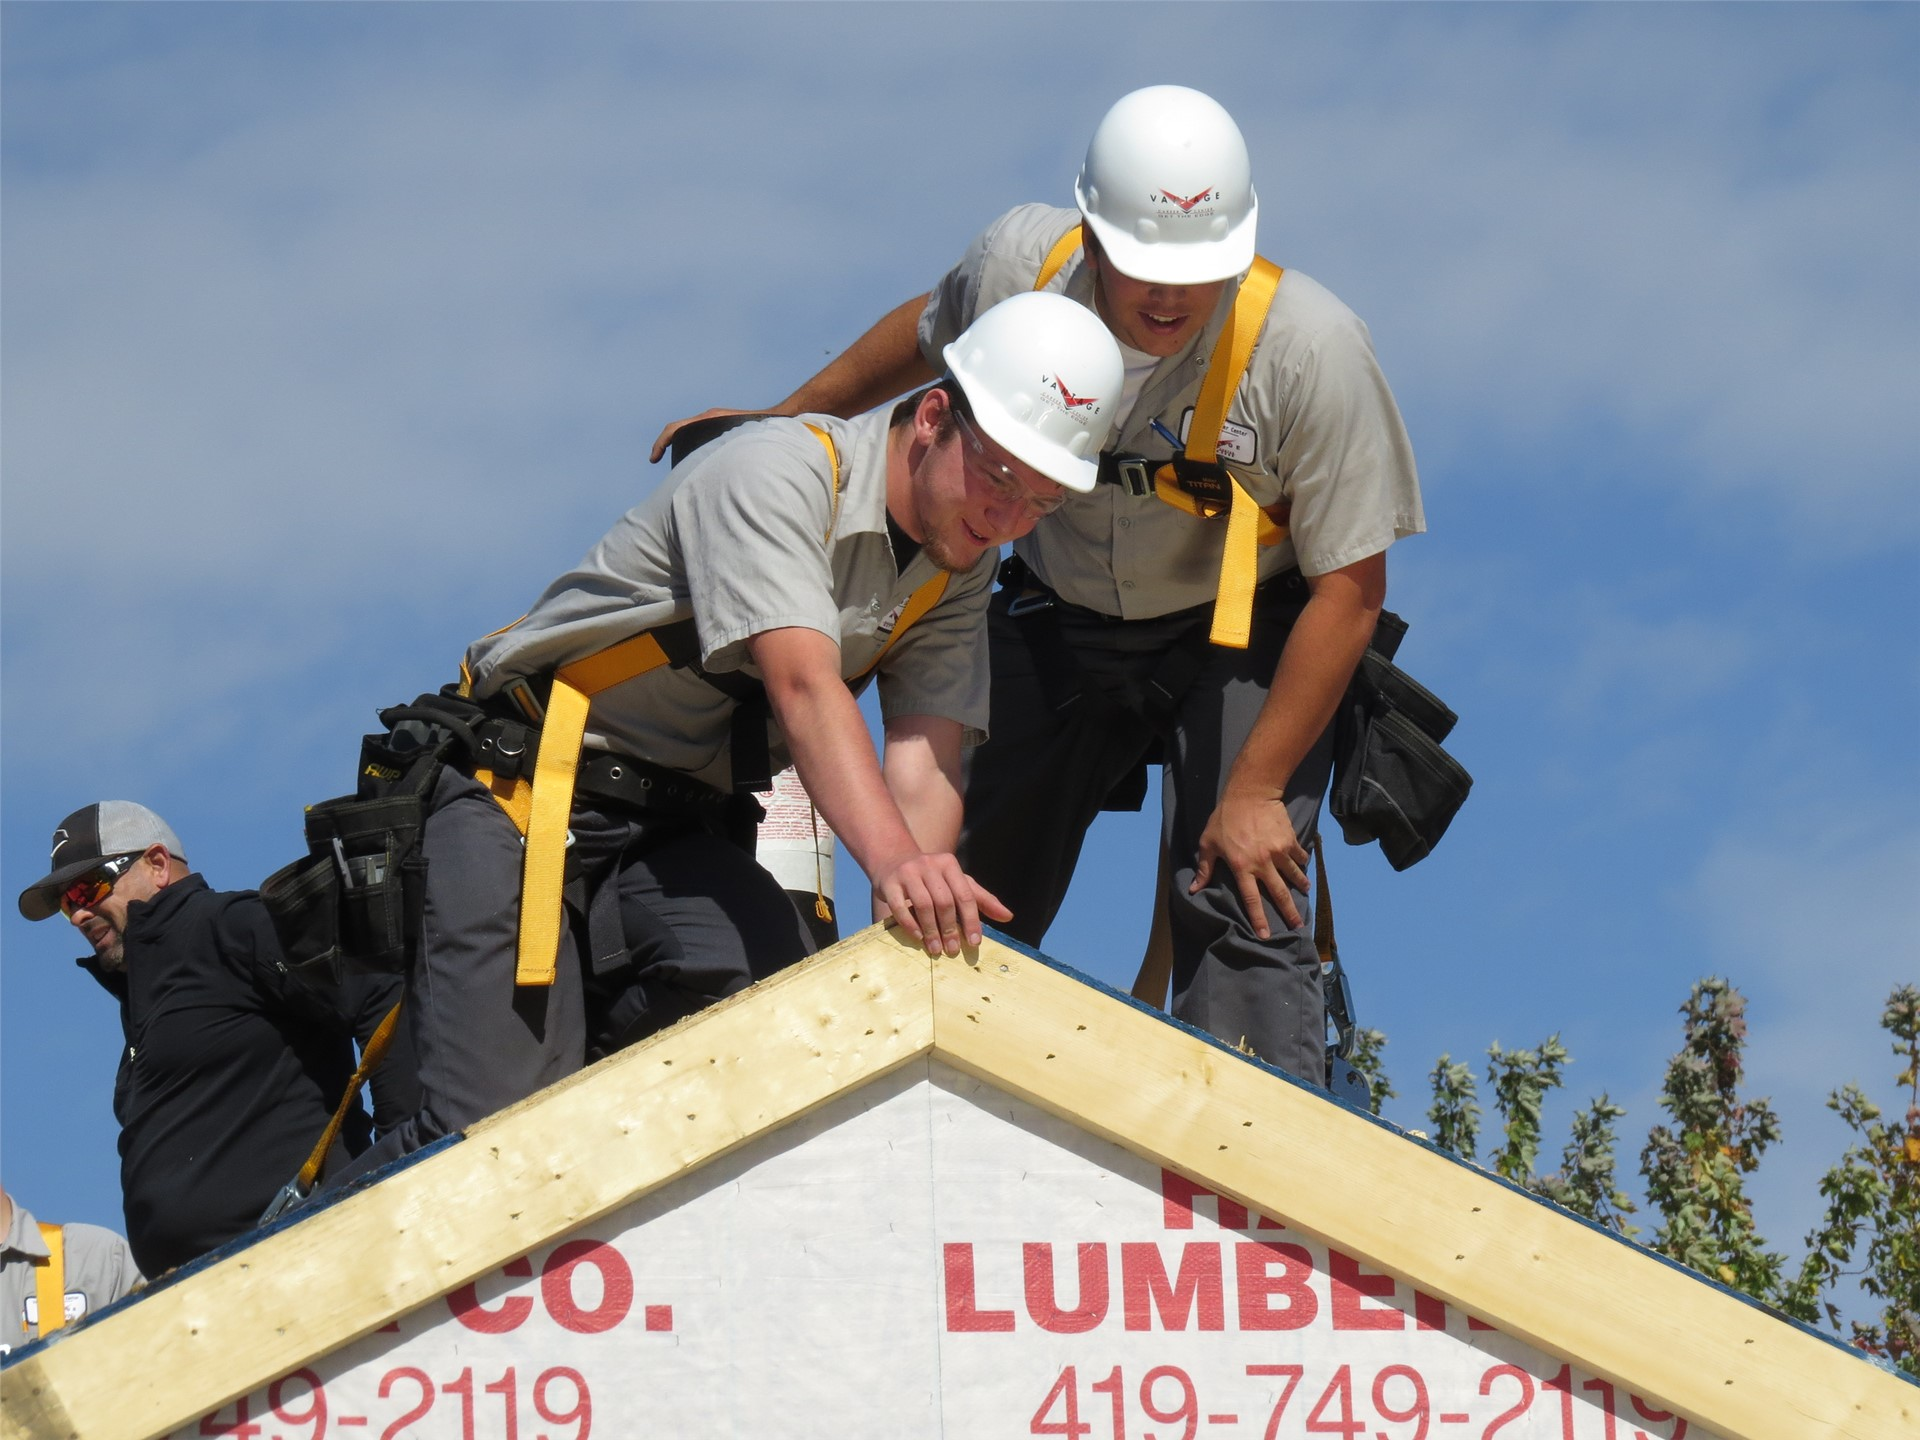 2 male Carpentry students wearing white hard hats on the roof of a building